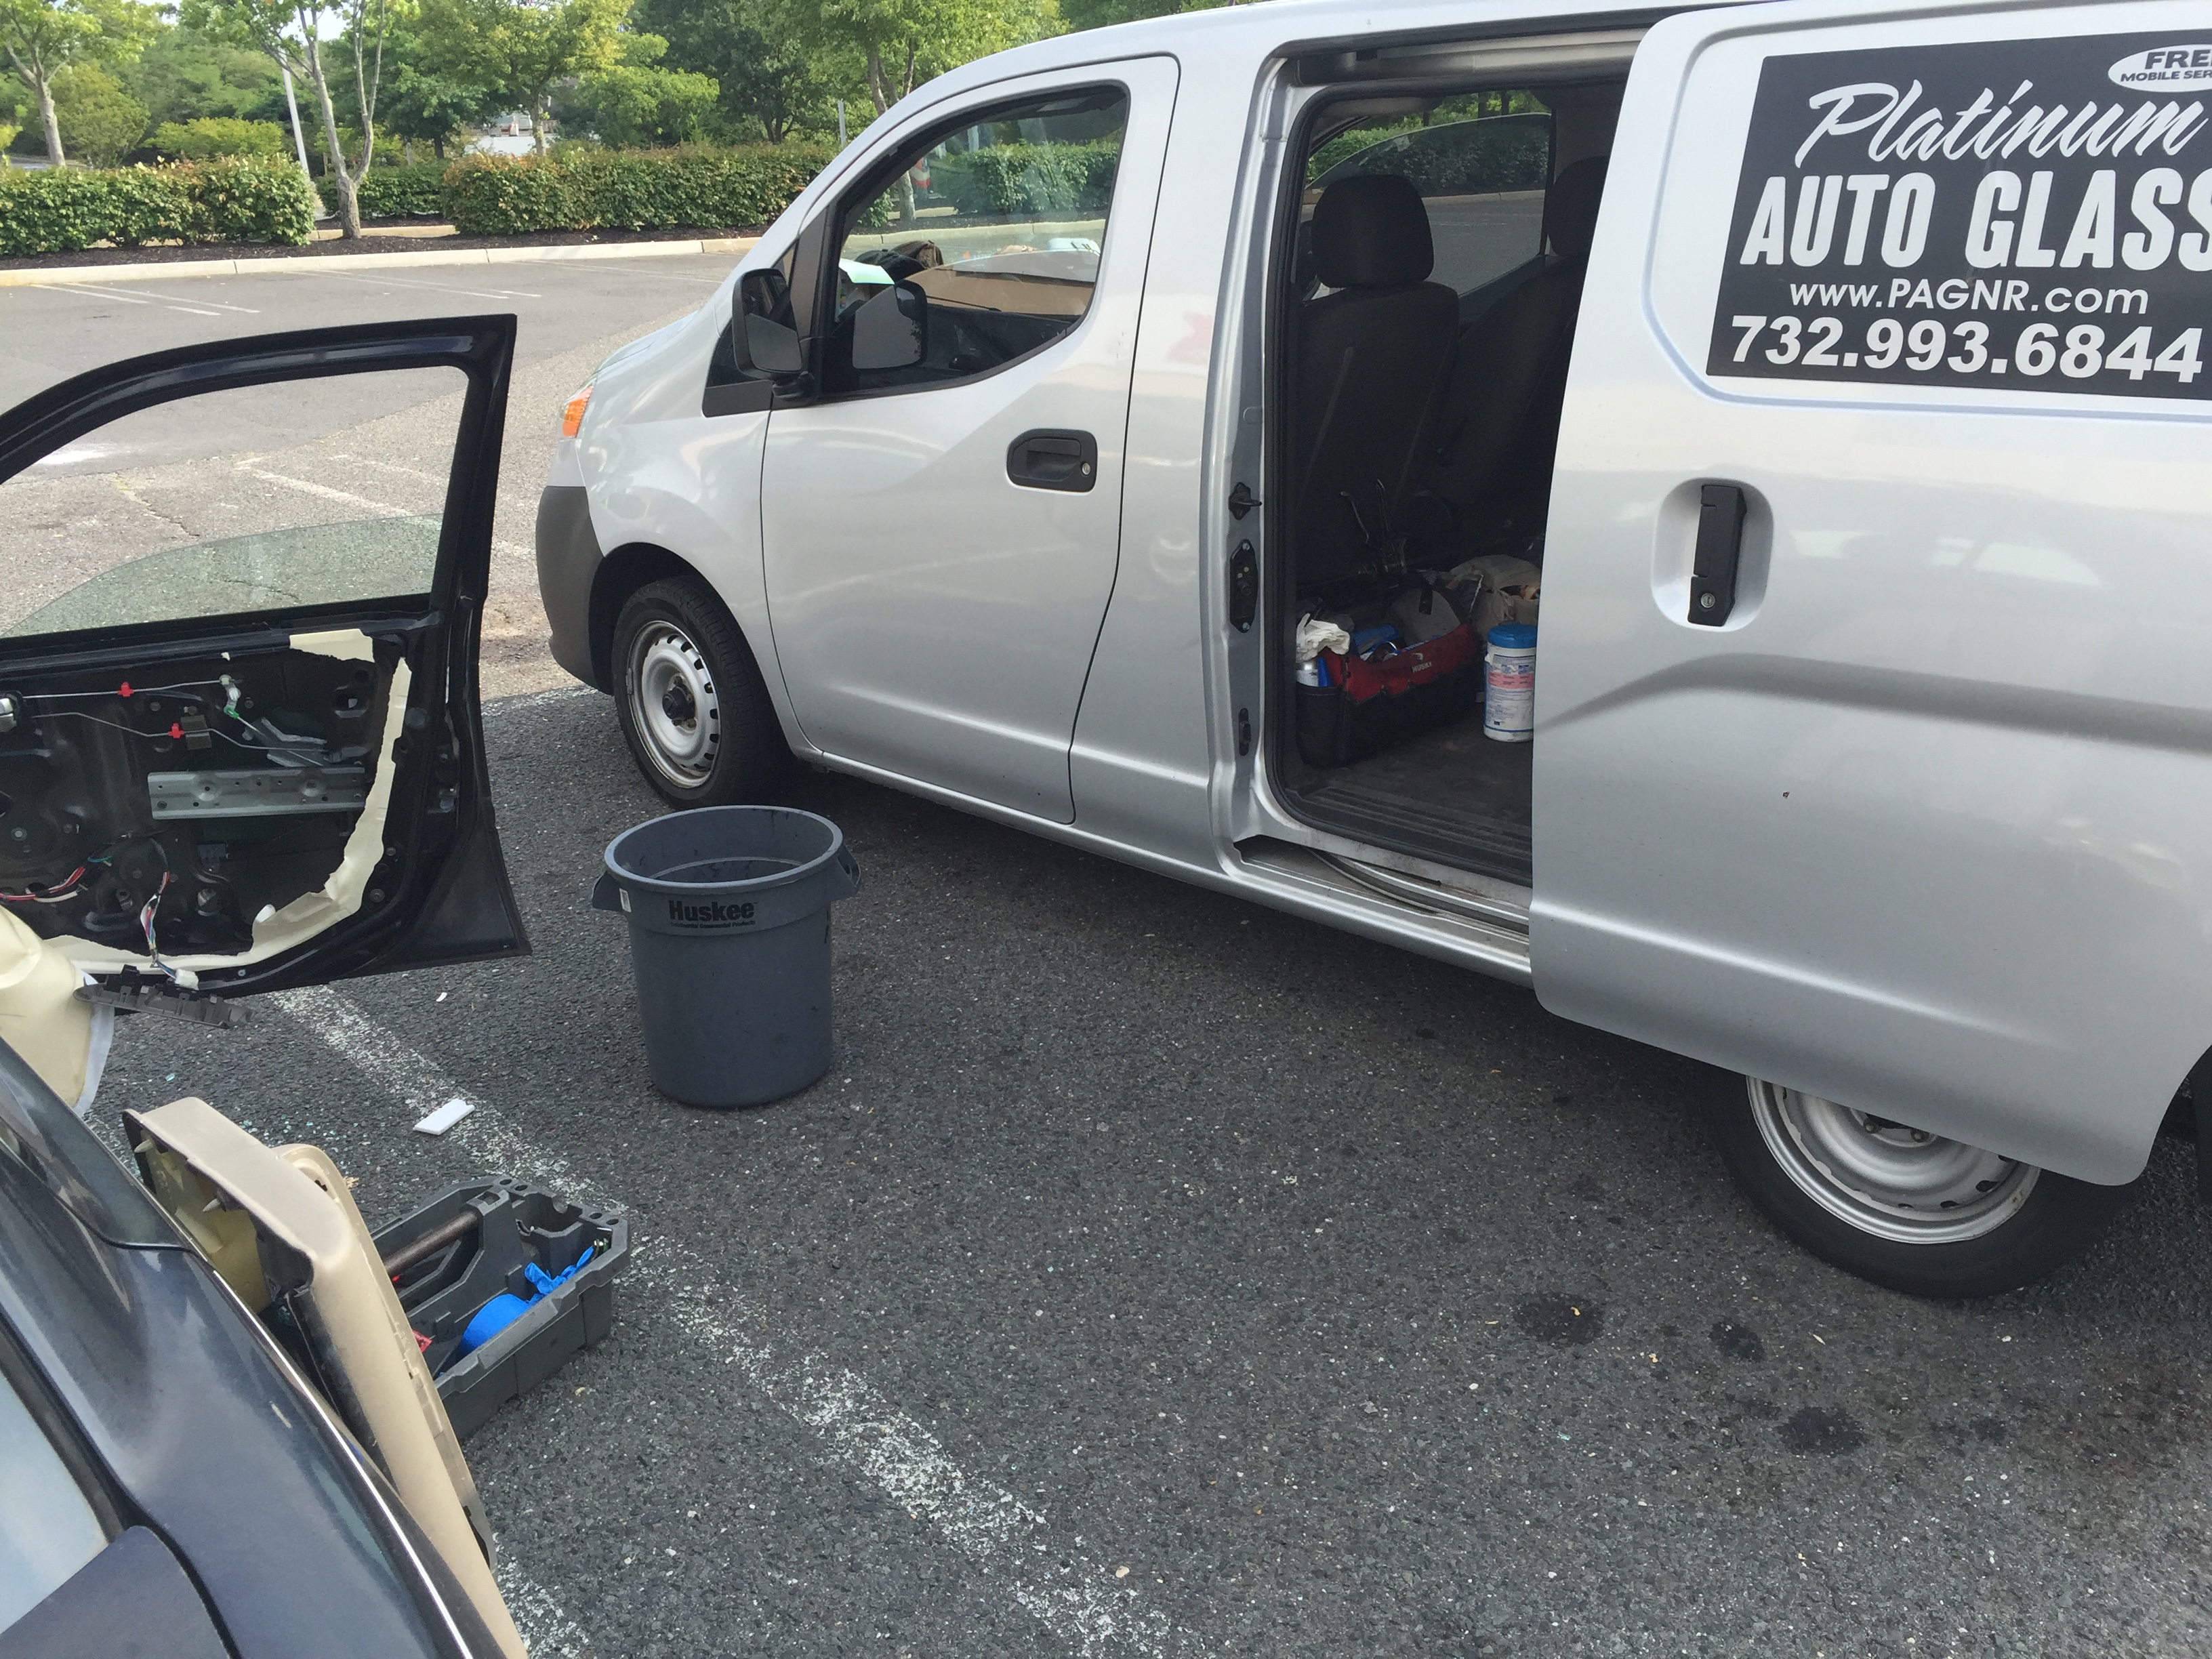 Car Window Repair in New Jersey by Platinum Auto Glass Repair New Jersey @ platinumautoglassnj.com